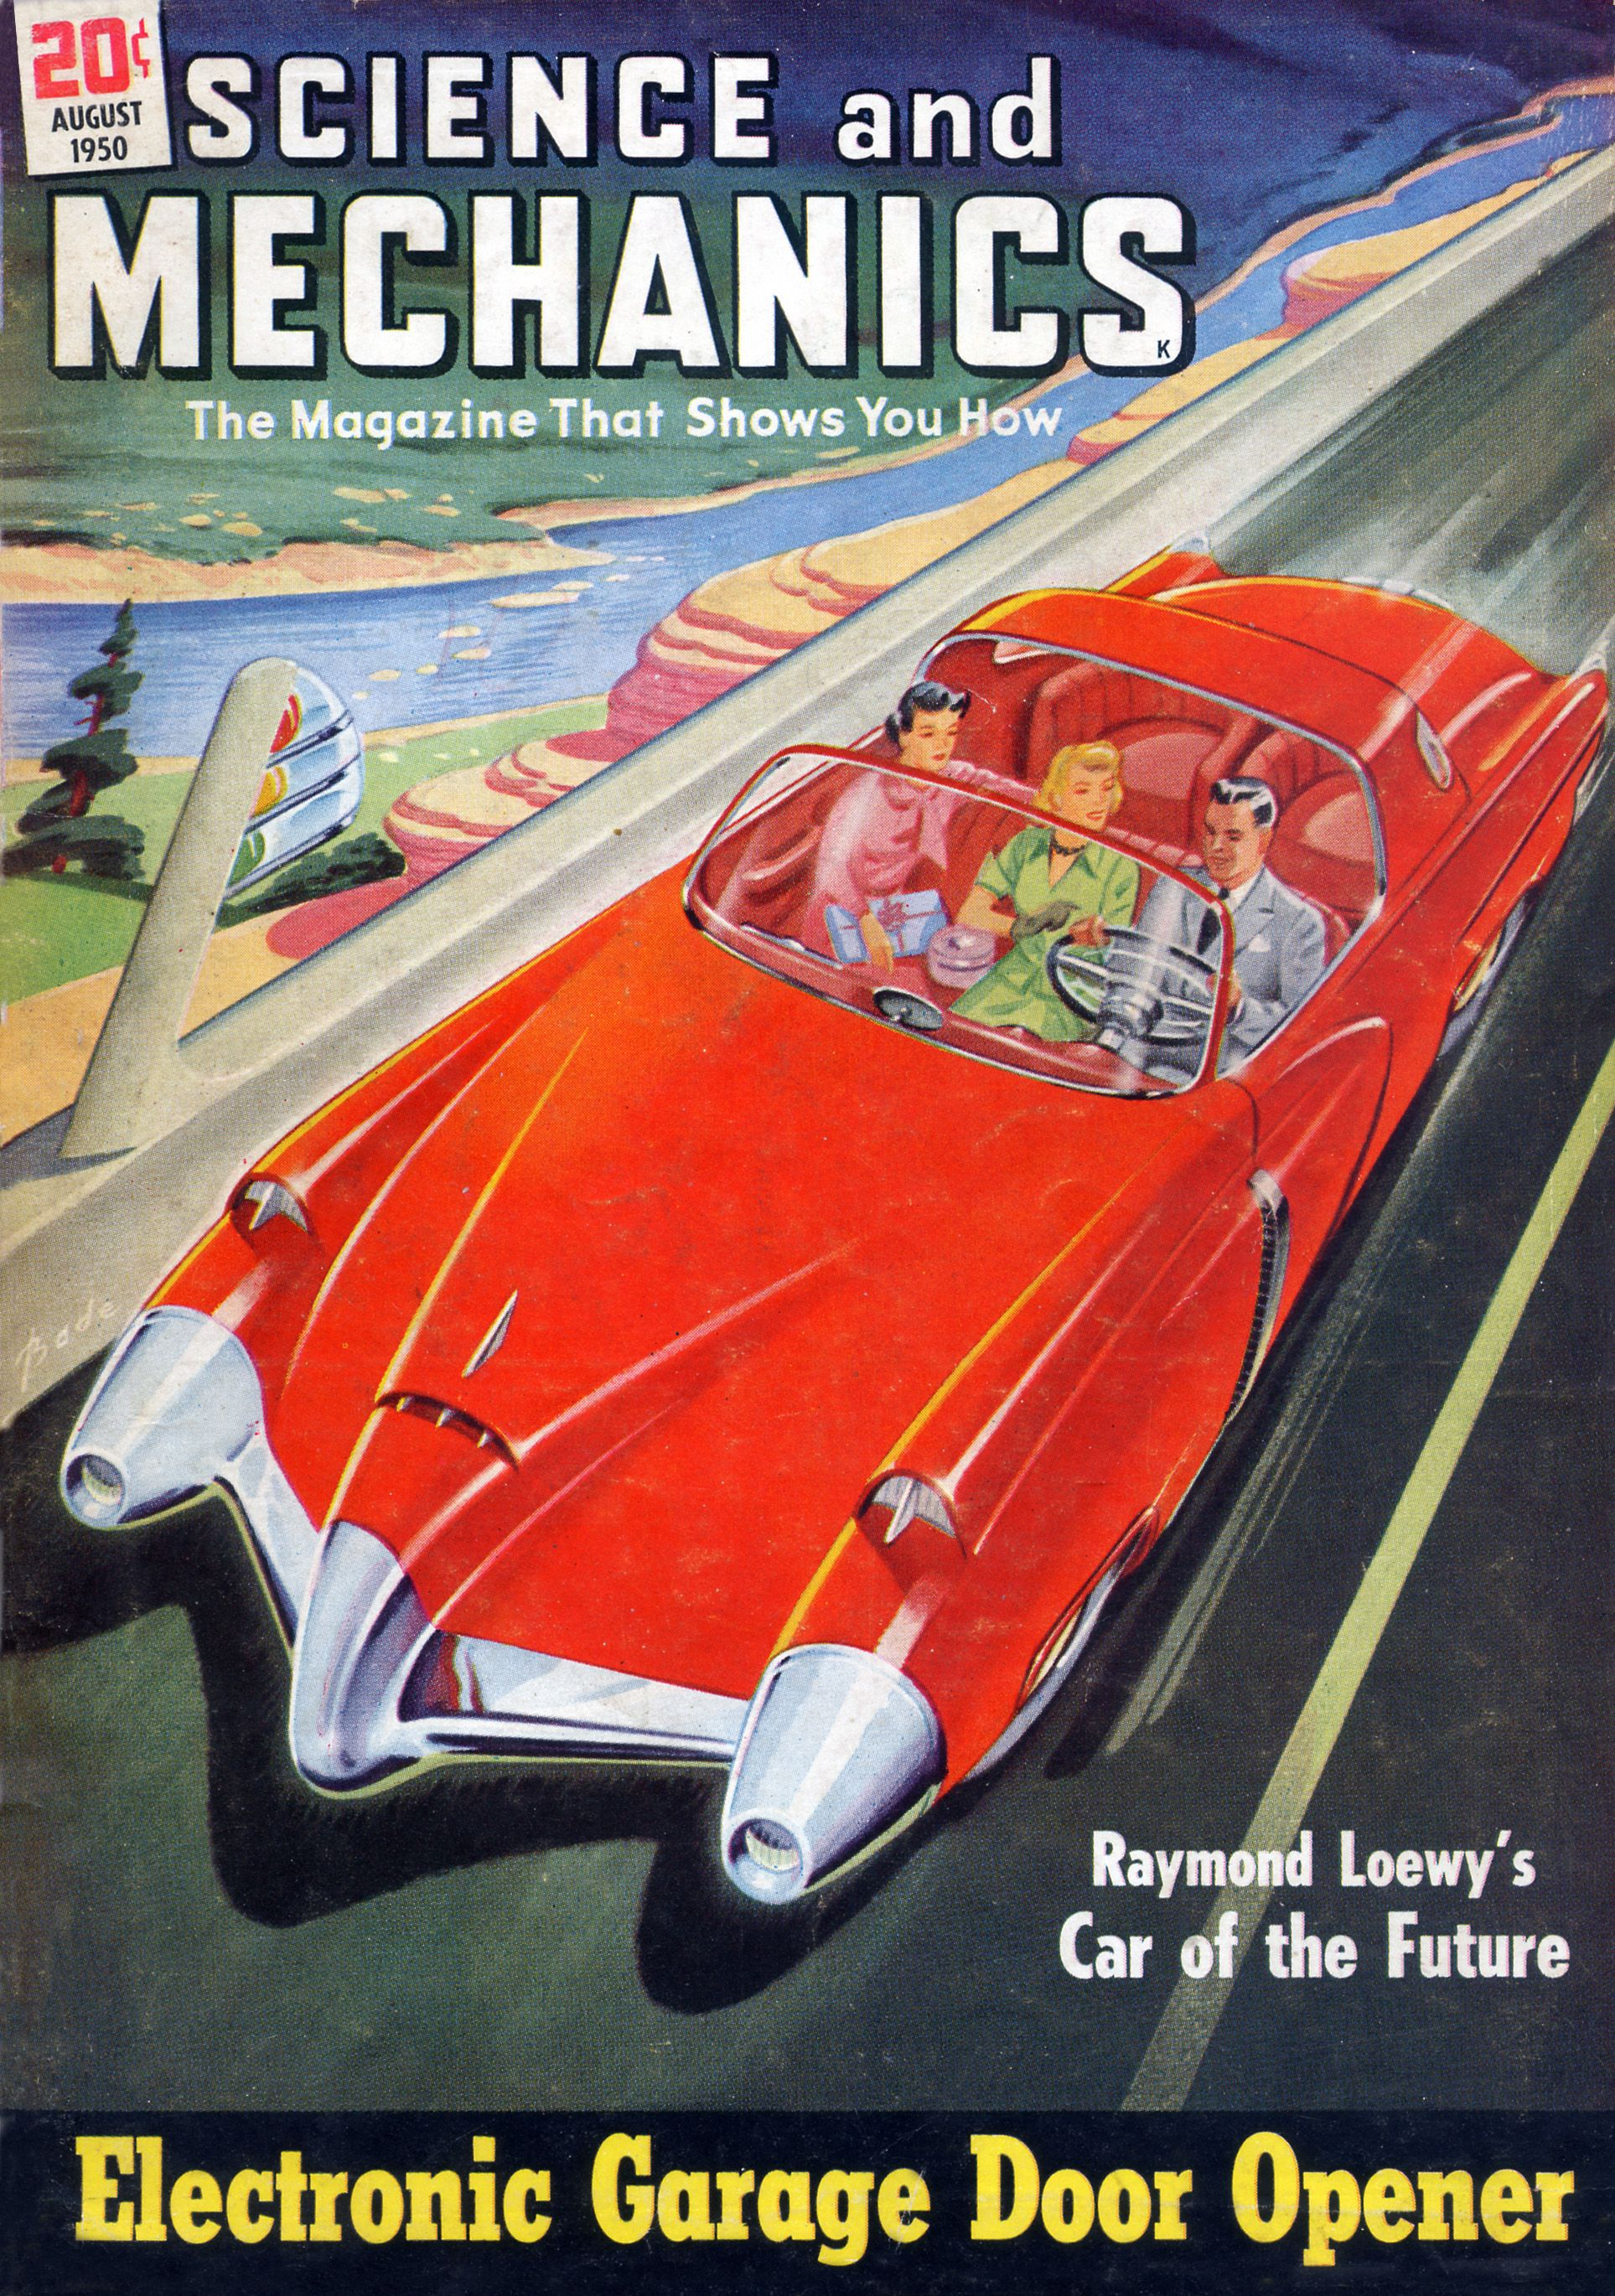 Pin by mdaane on perfect world pinterest retro futurism cars